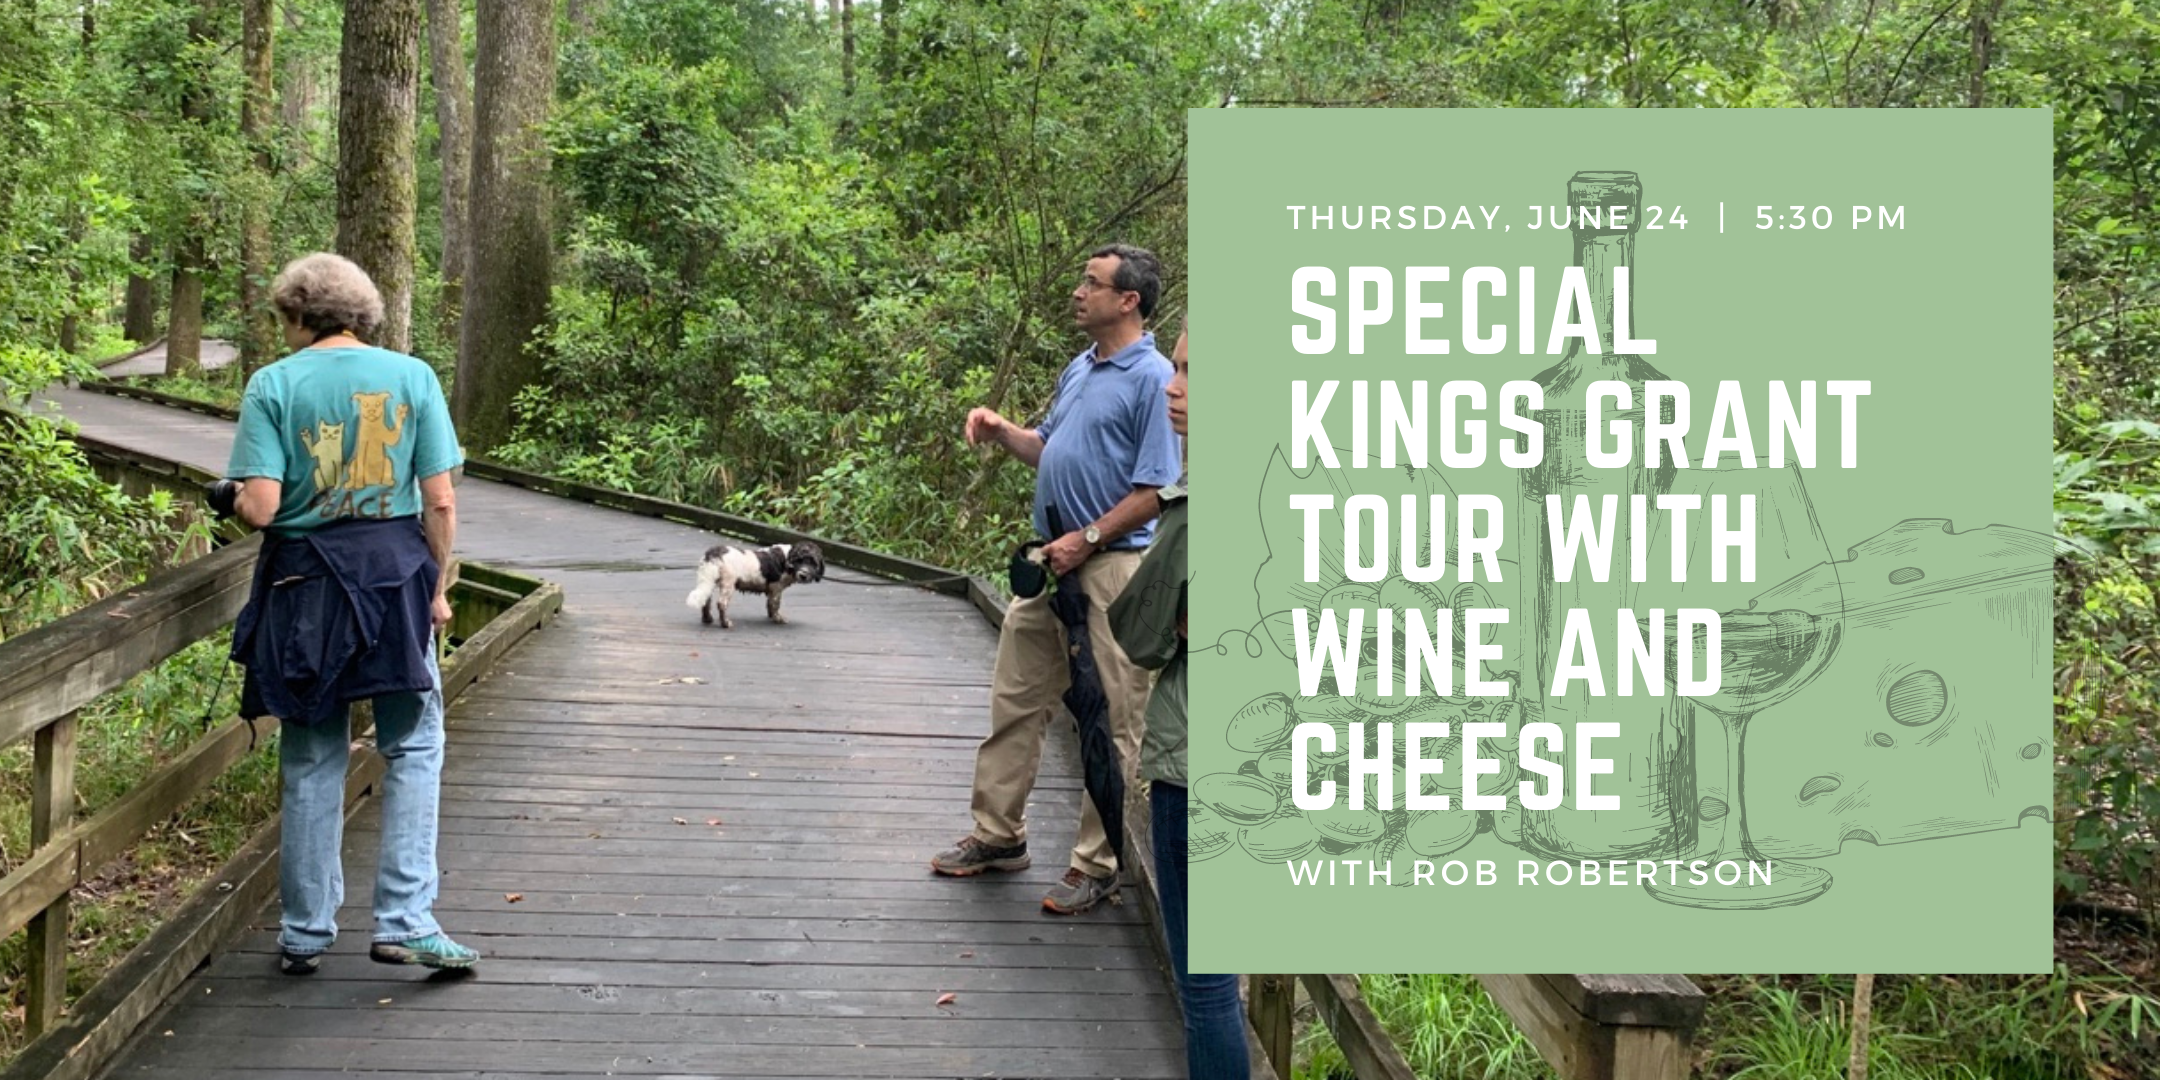 Special Kings Grant Tour with Wine and Cheese